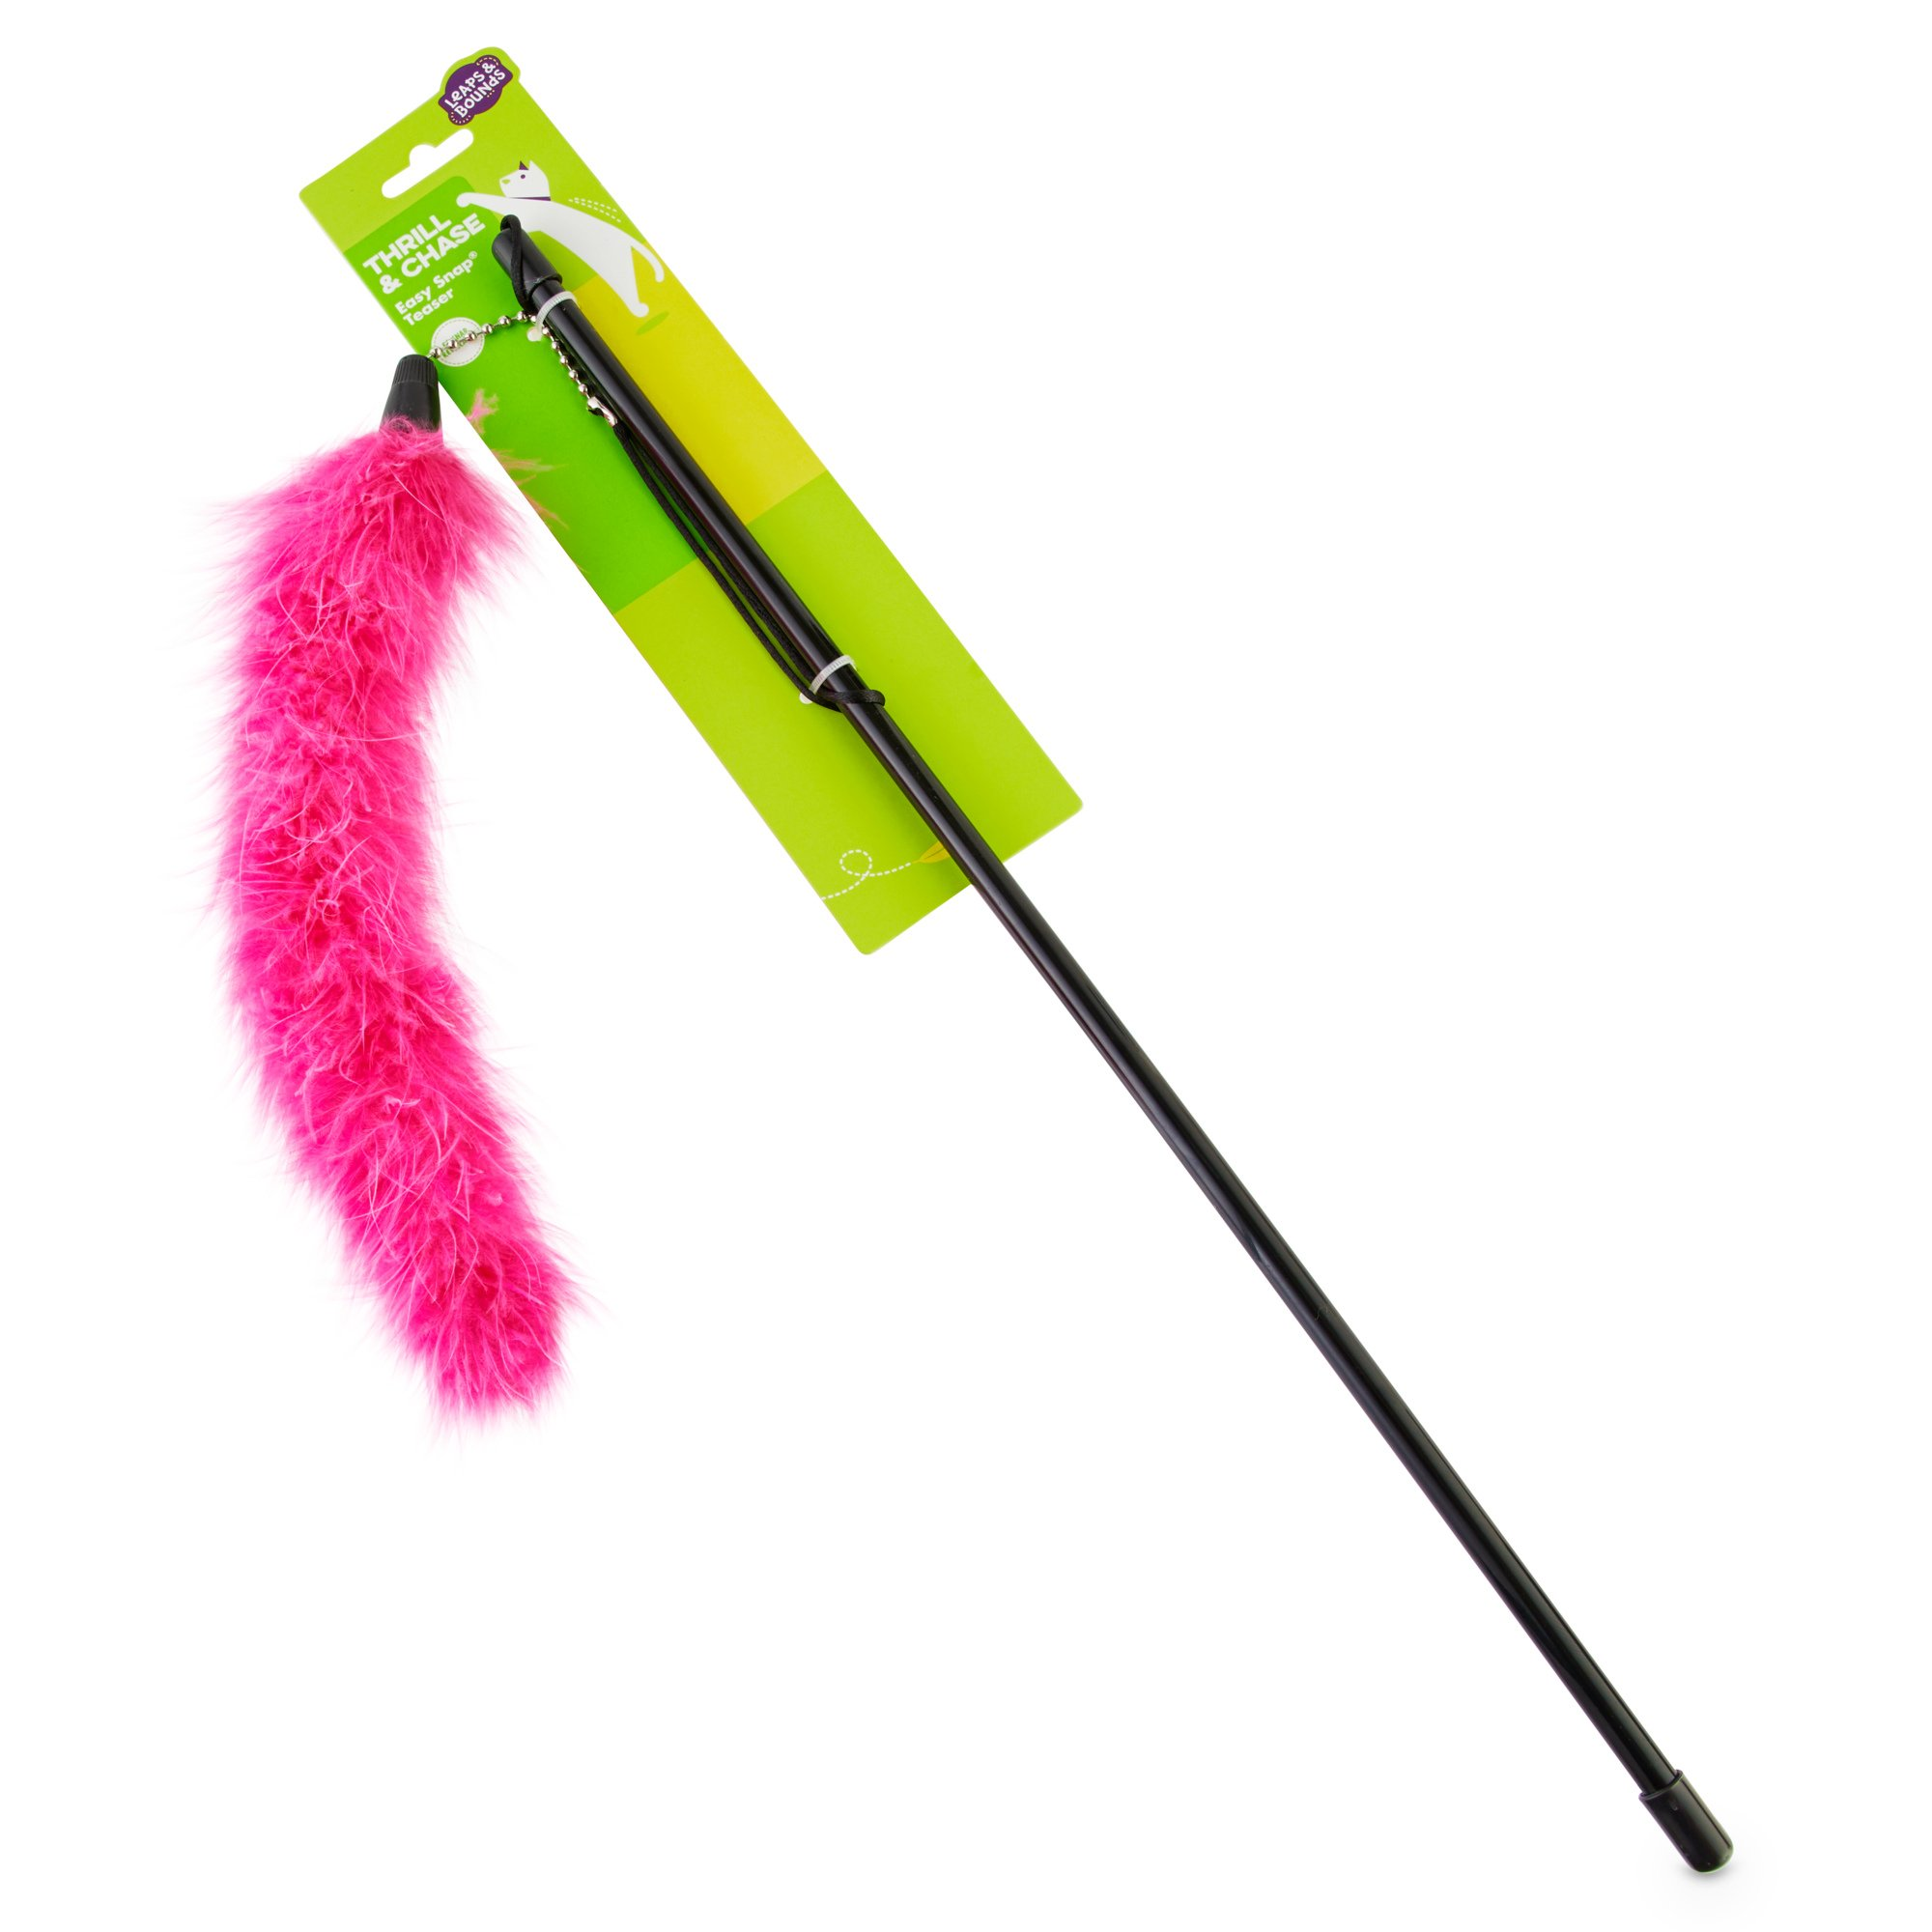 Leaps & Bounds EZ Snap Bright Pink Teaser Wand